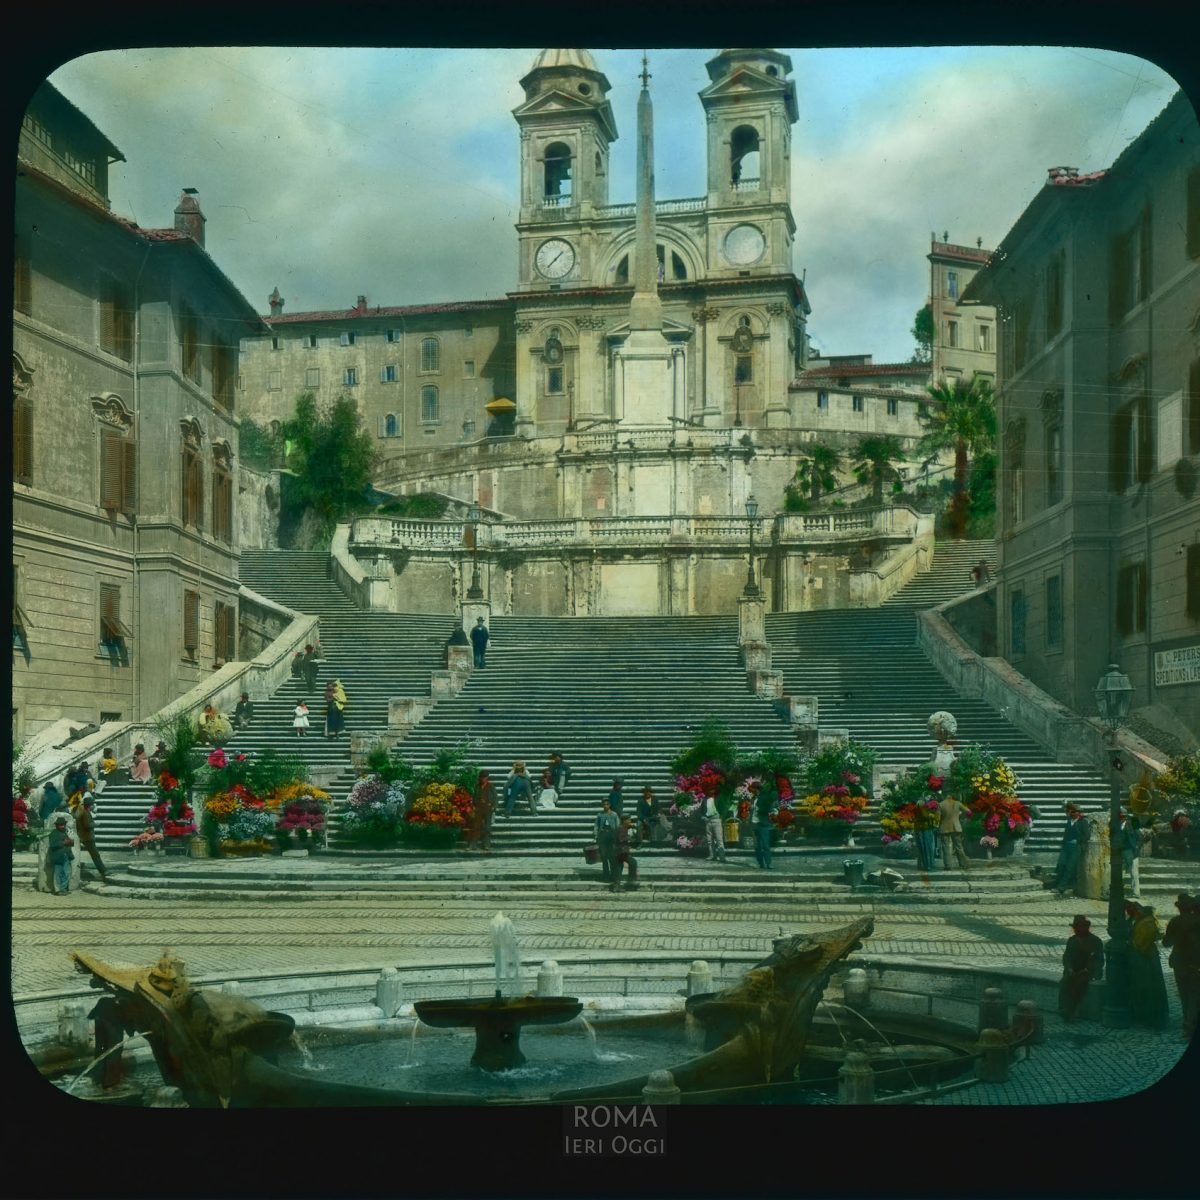 Rome. Spanish Steps (Scala di Spagna): view up from the Piazza di Spagna towards the church of Trinita dei Monti View in tinted lantern slide, ca. 1919-1938. The stairs were built 1721-1725. The church was built in the 16th century, with a facade by Carlo Maderno.